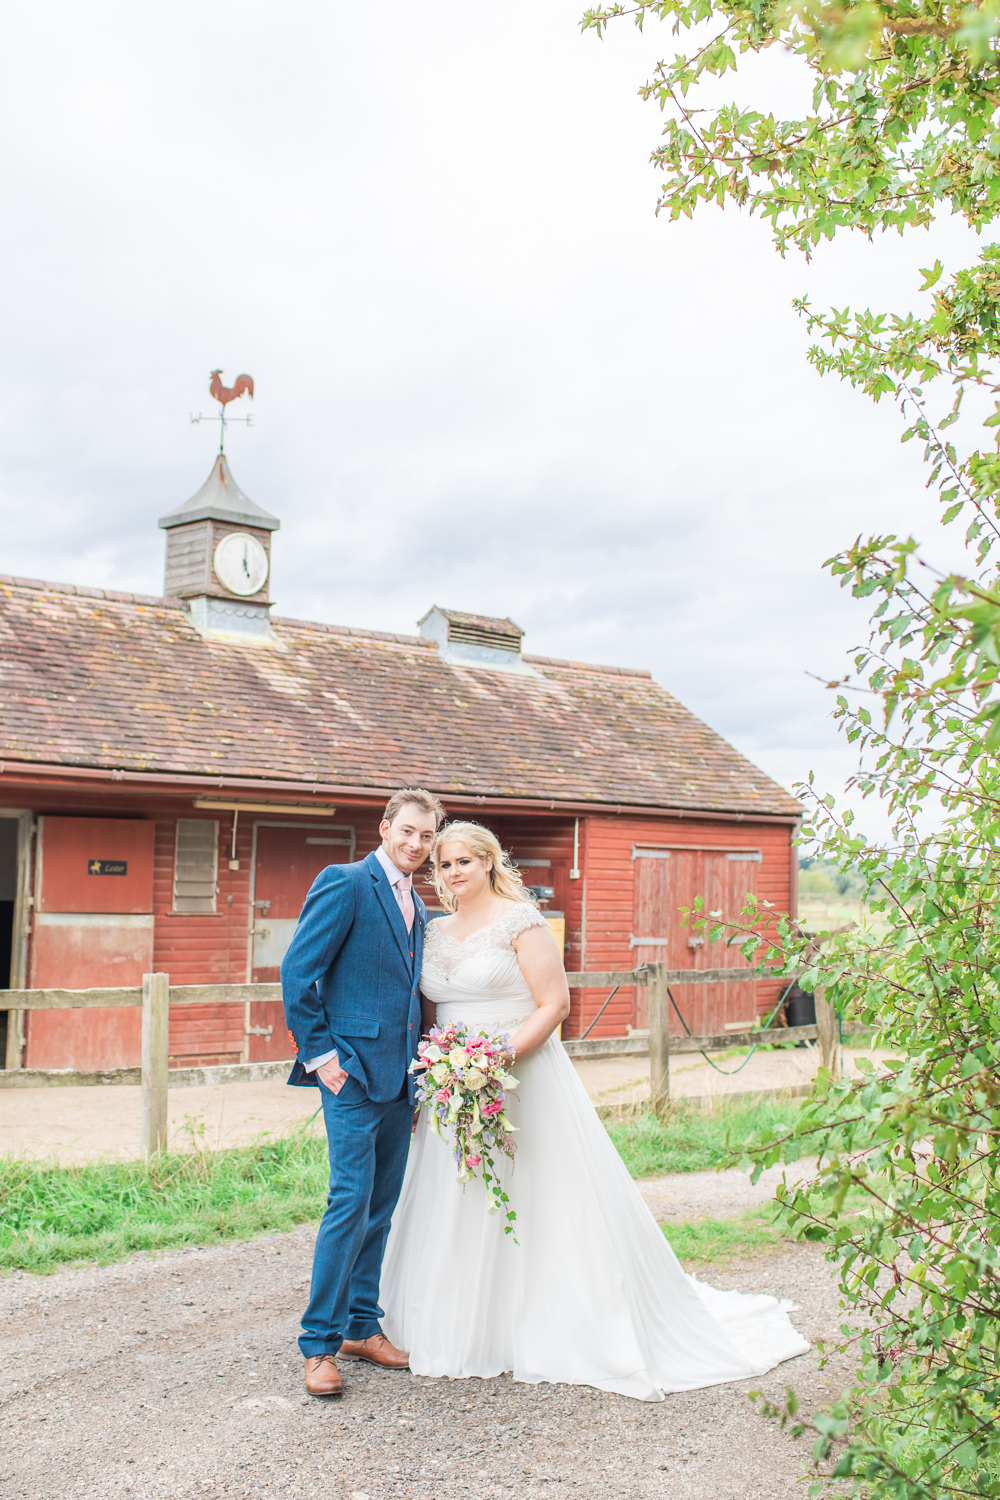 Bride Bridal Short Sleeve Lace V Neck Dress Gown Navy Wool Tweed Suit Groom Waterfall Cascading Bouquet Bedfordshire Tipi Wedding Natalie Stevenson Photography